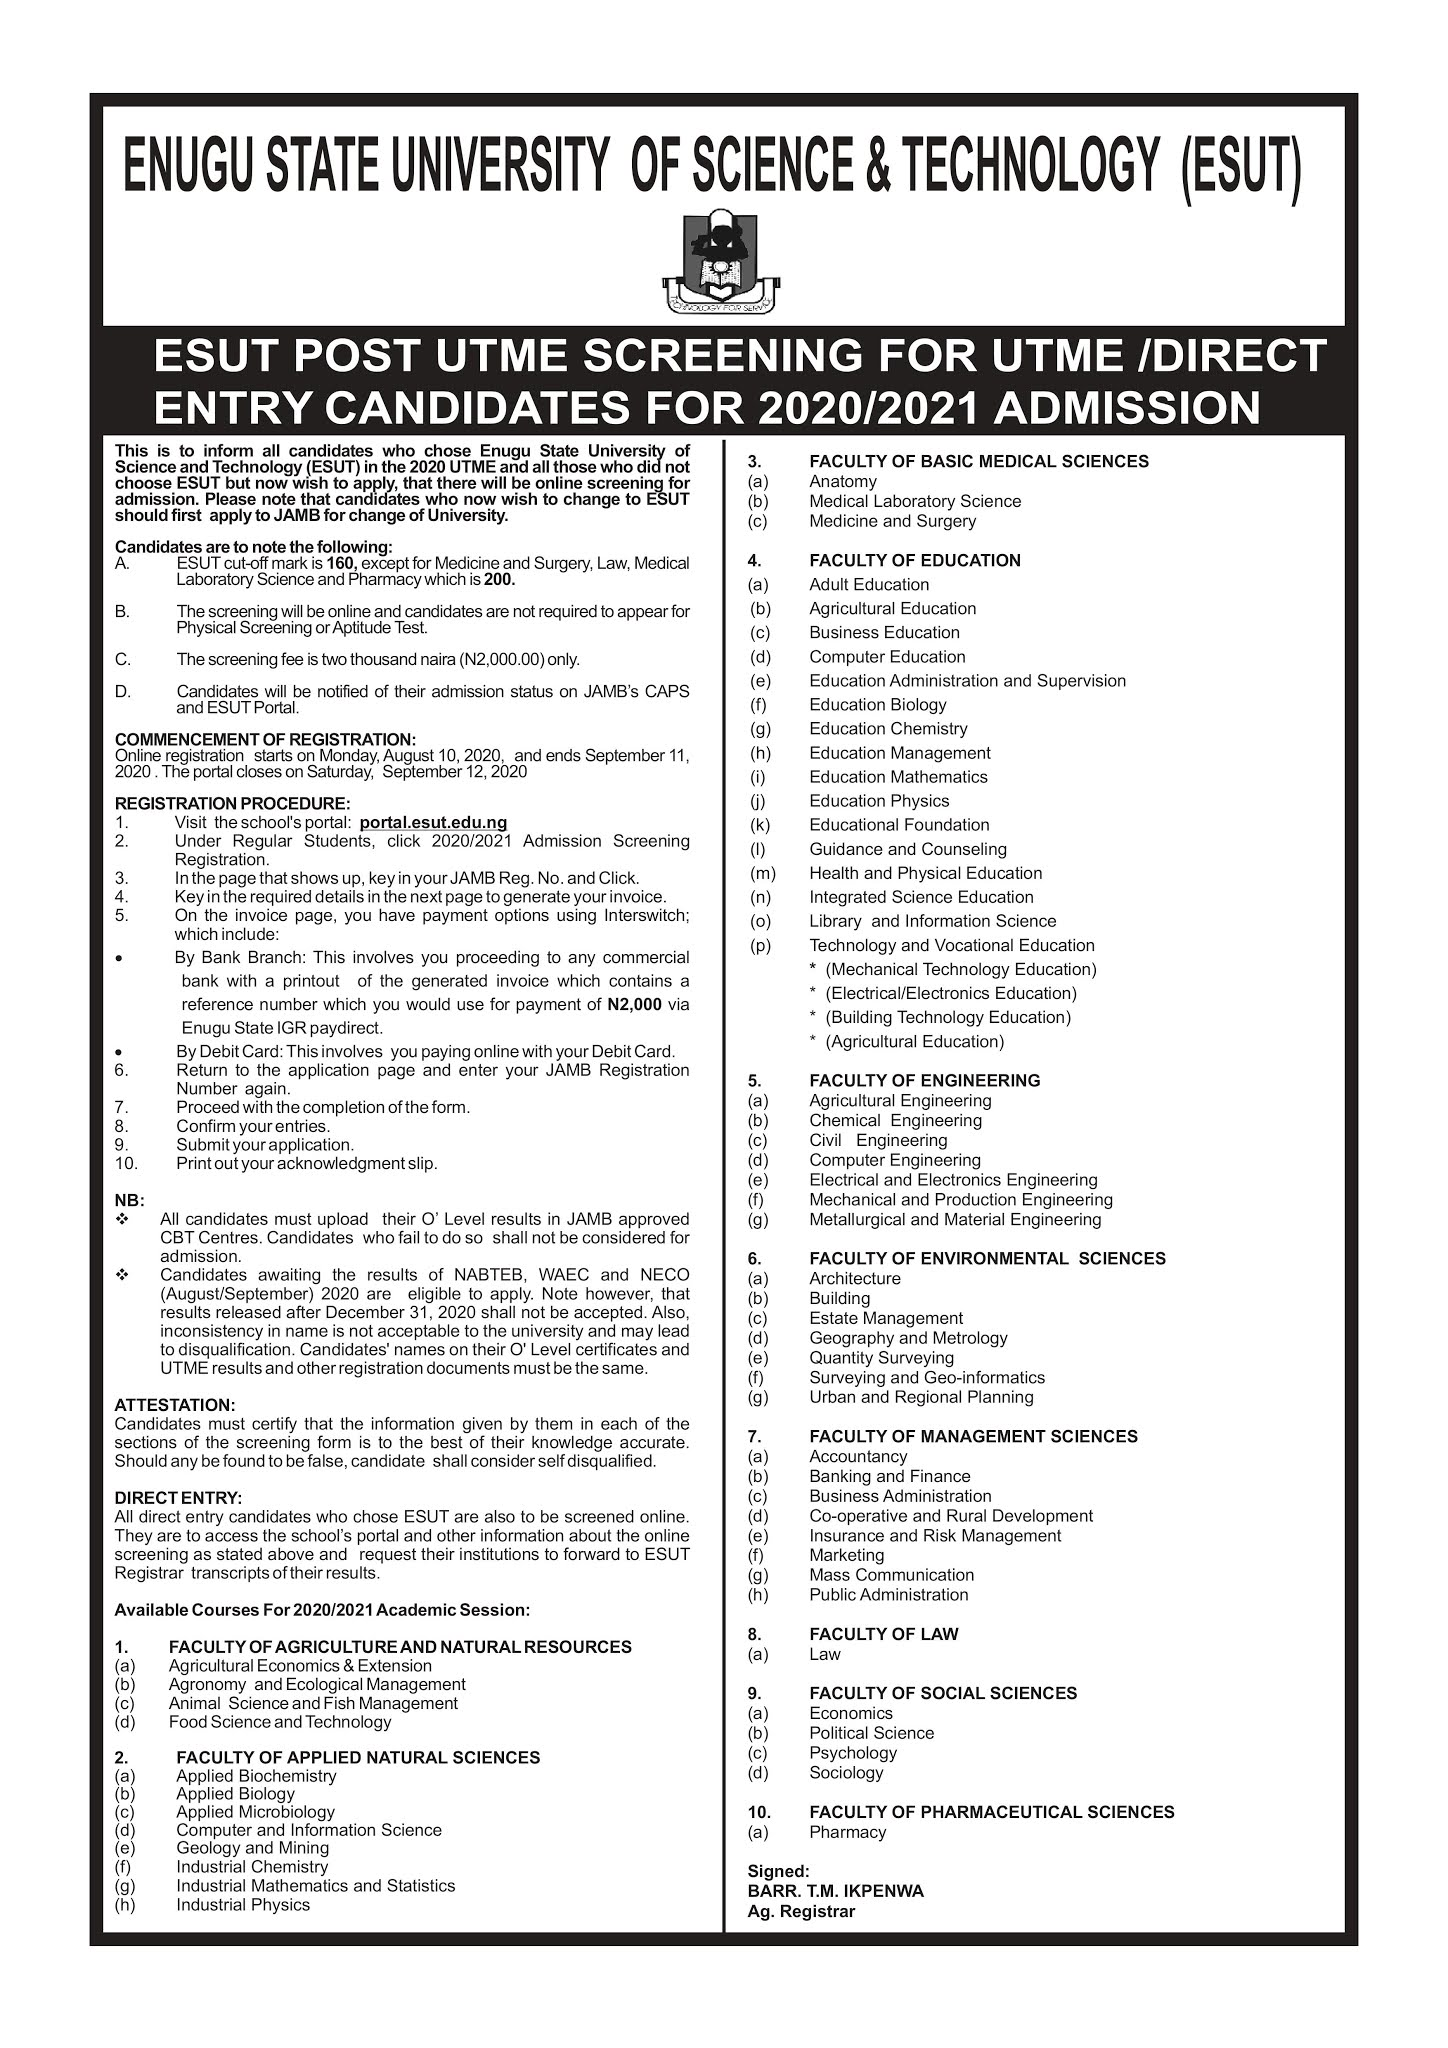 ESUT Post-UTME & DE Screening Form 2020/2021 is Out